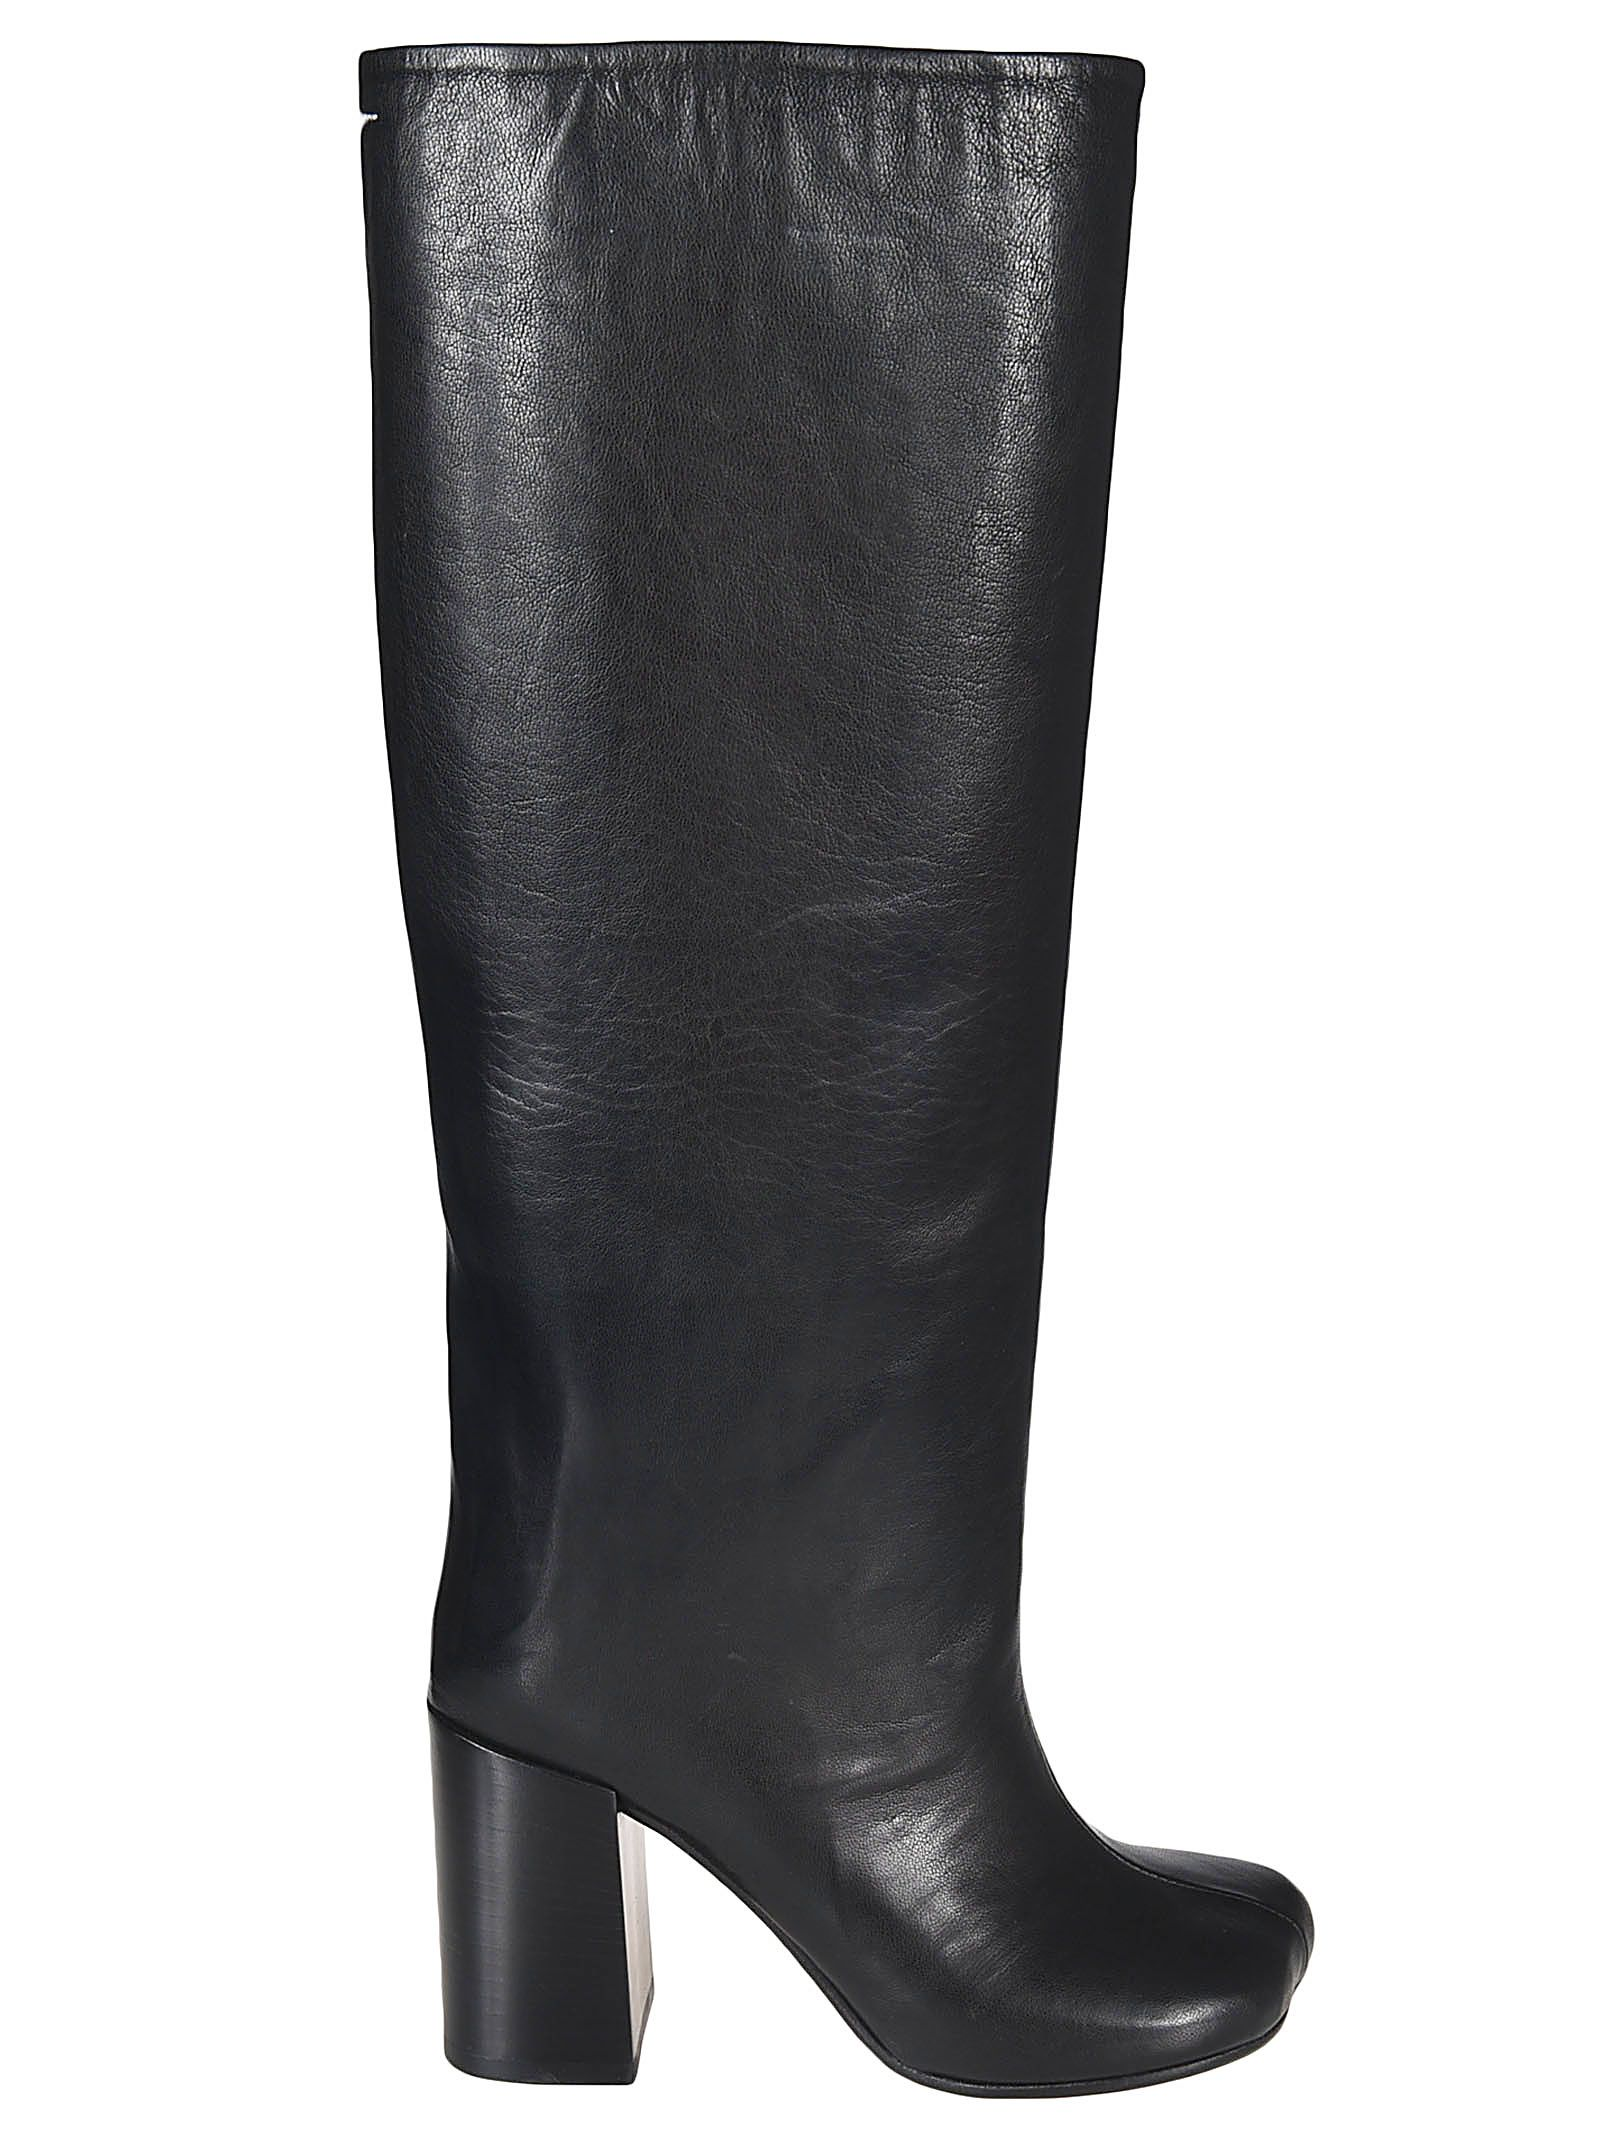 Mm6 Maison Margiela Tall Leather Boots